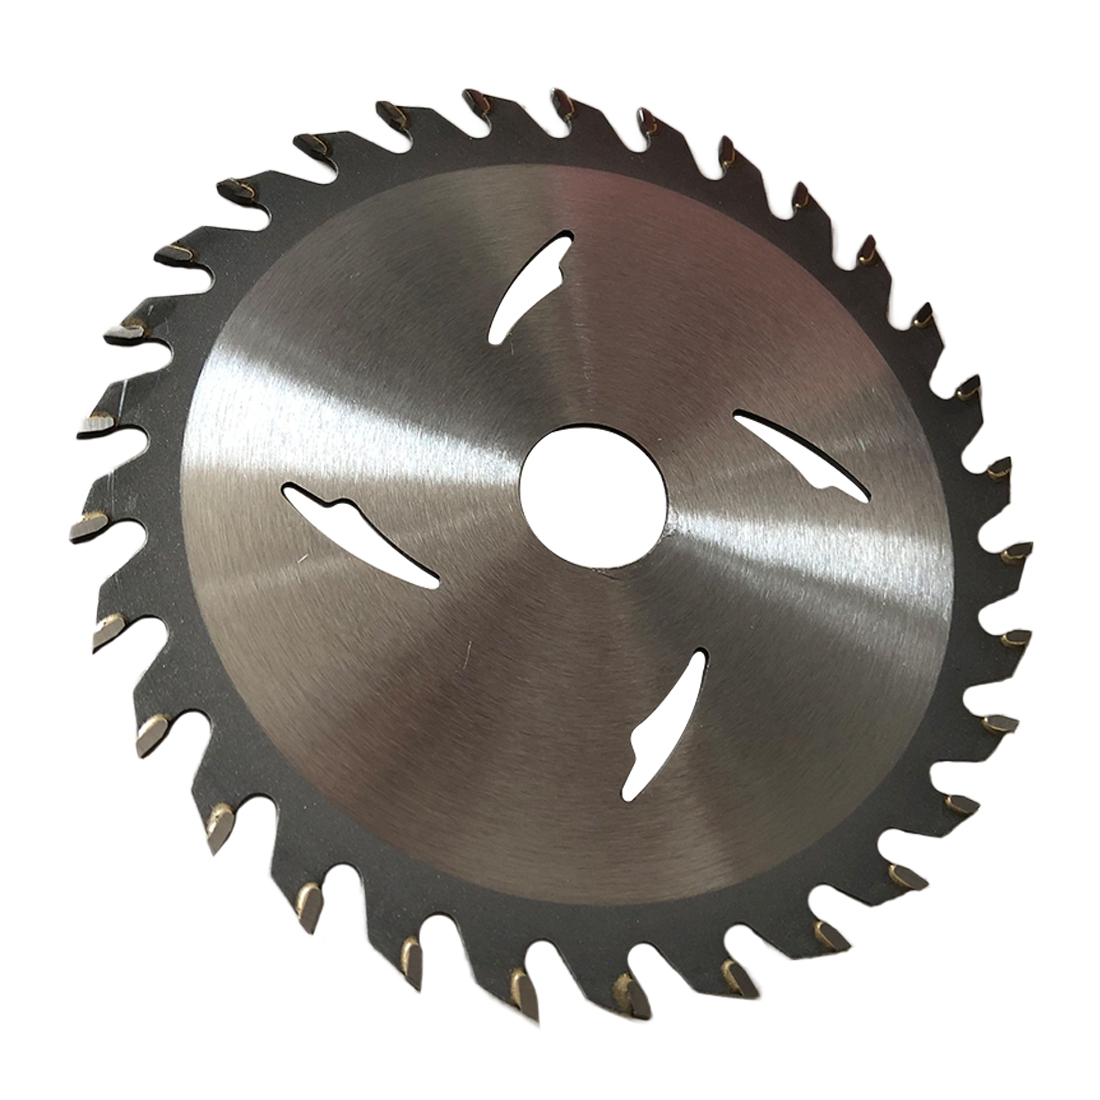 1PC 125/110mm*20mm 24T/30T/40T TCT Saw Blade Carbide Tipped Wood Cutting Disc For DIY&Decoration General Wood Cutting